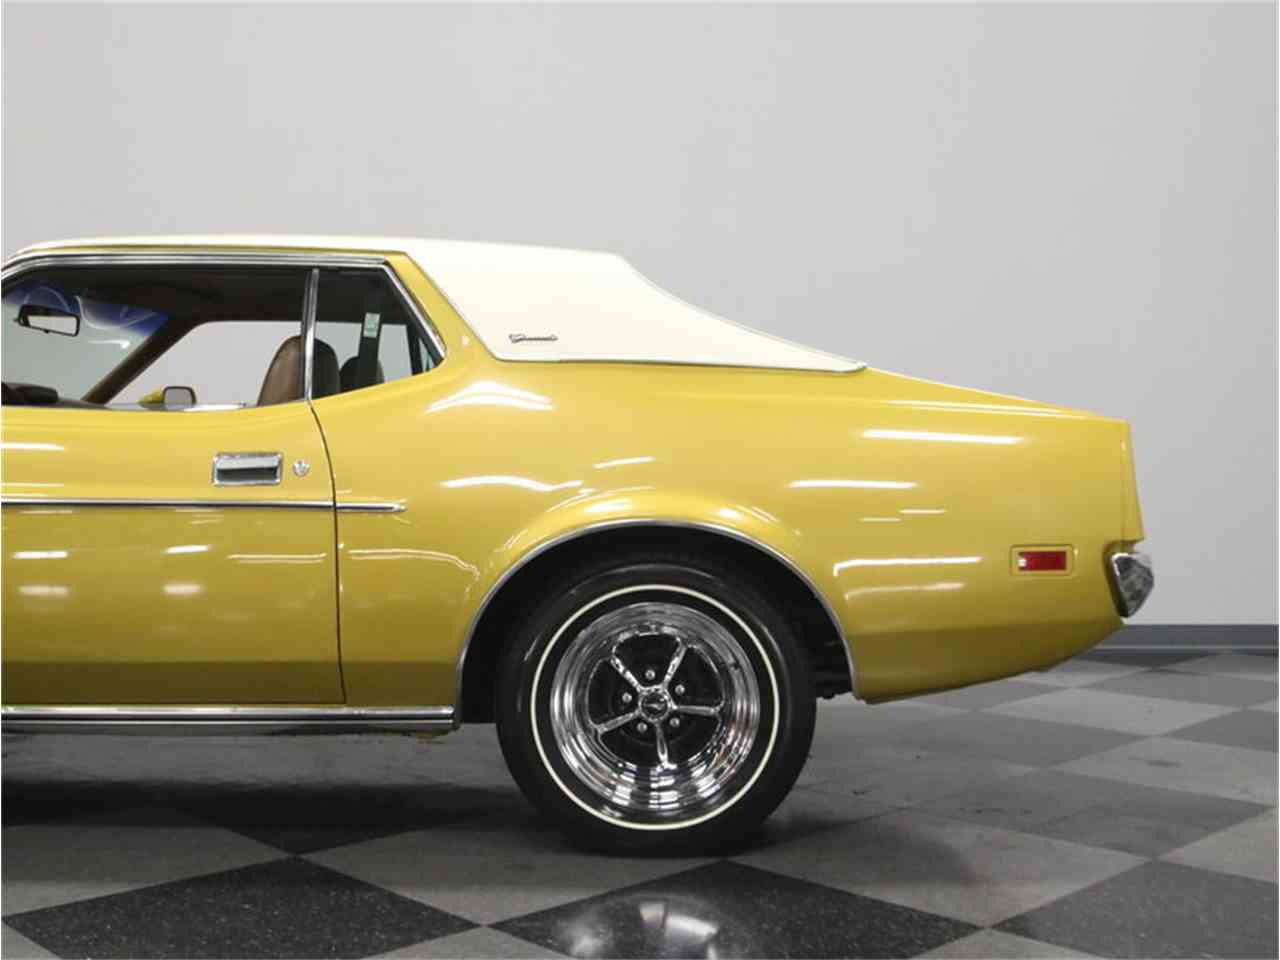 Large Picture of Classic '72 Ford Mustang located in Tennessee - $20,995.00 Offered by Streetside Classics - Nashville - M5W7